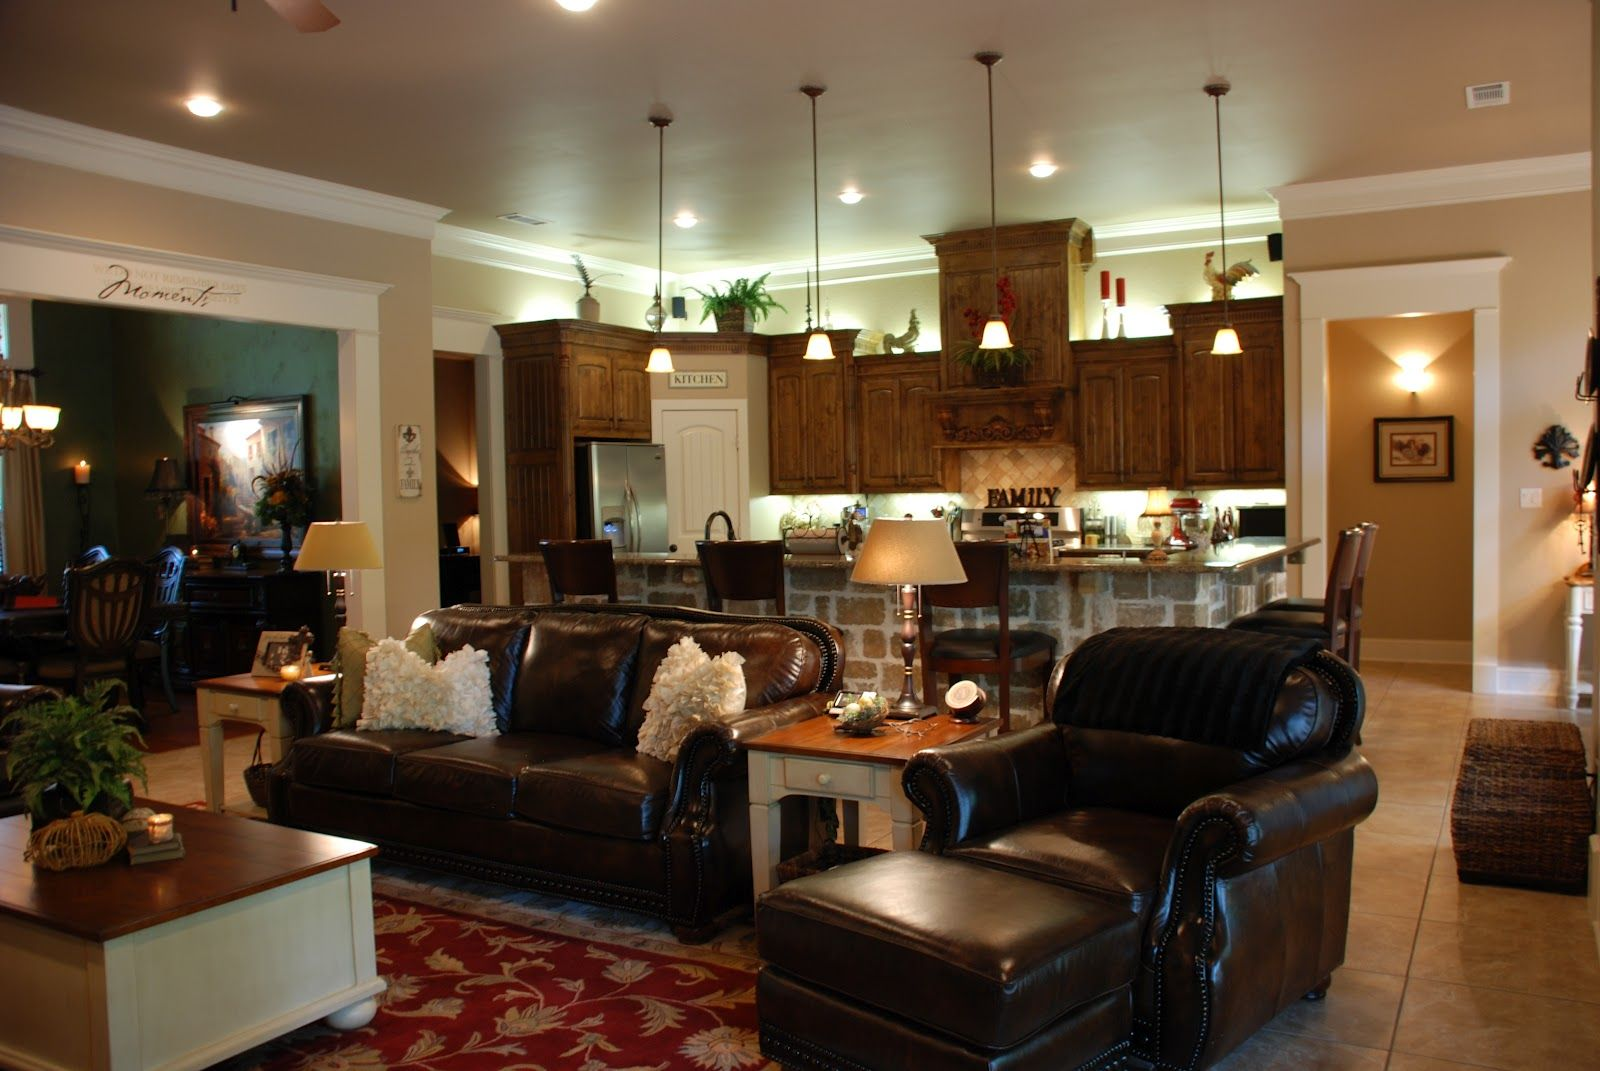 pin by gail russell on kitchens | living room, kitchen design